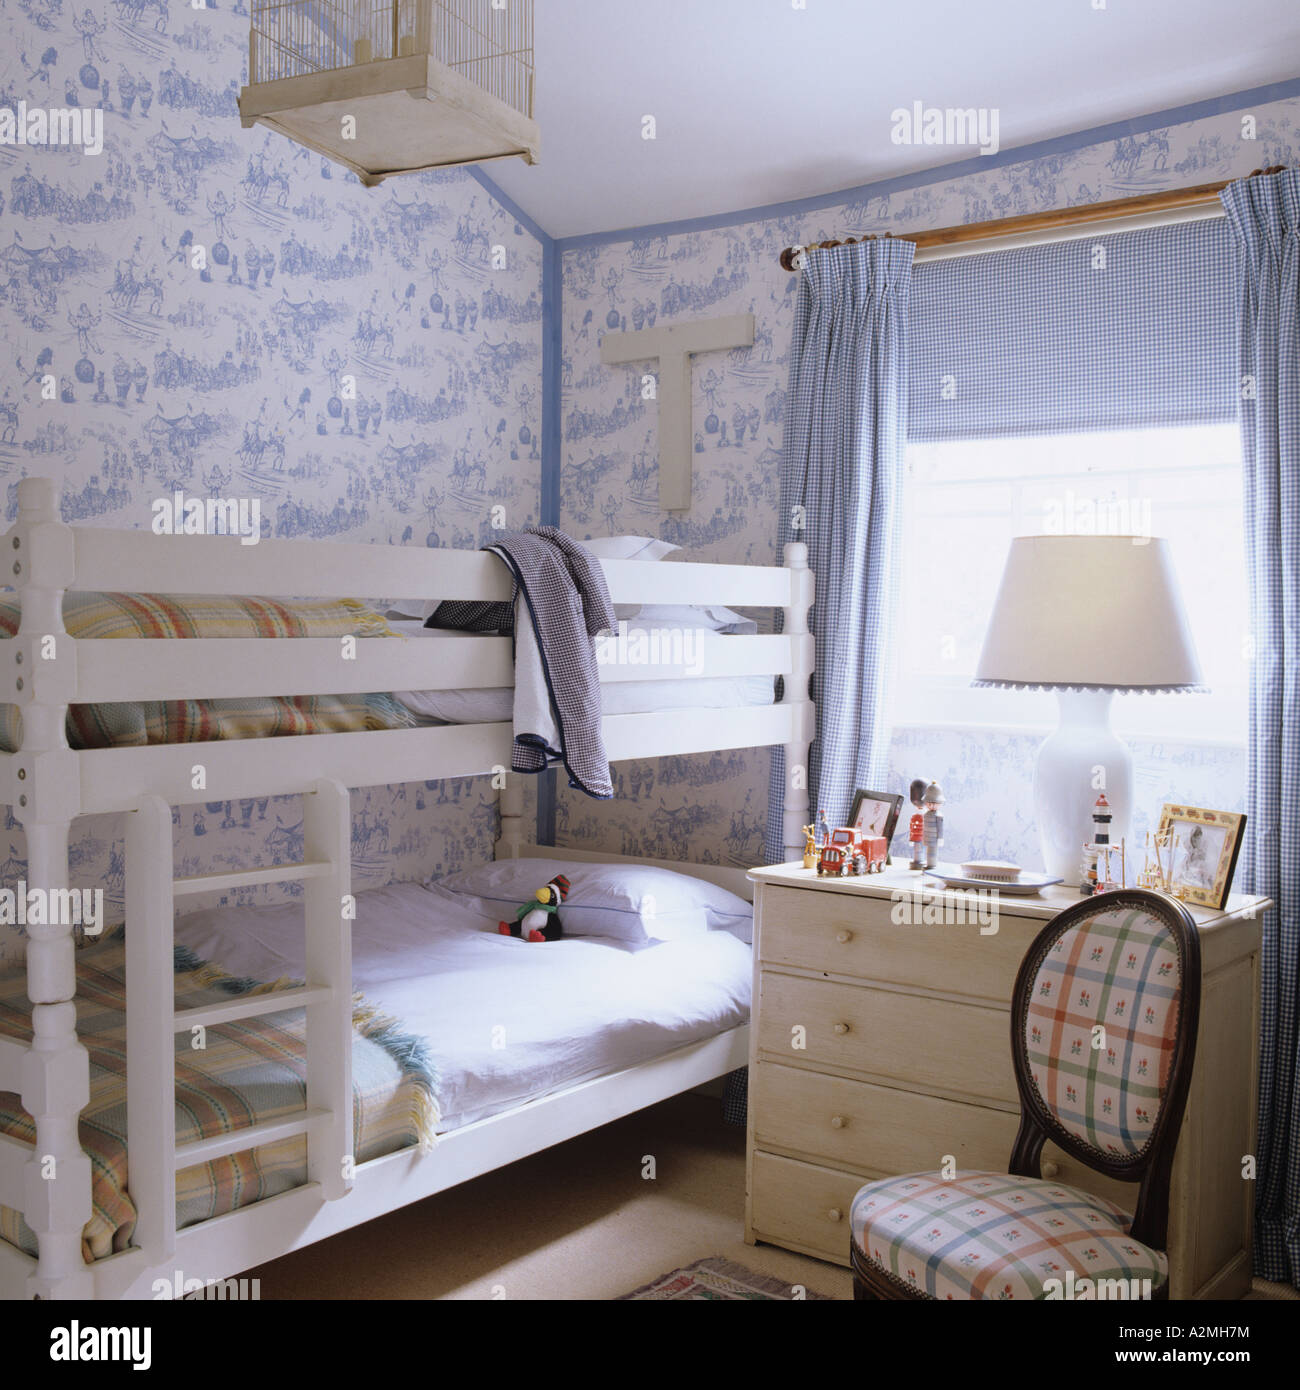 Bunkbed And Toile De Jouy Wallpaper In Bedroom Of English Country House    Stock Photo